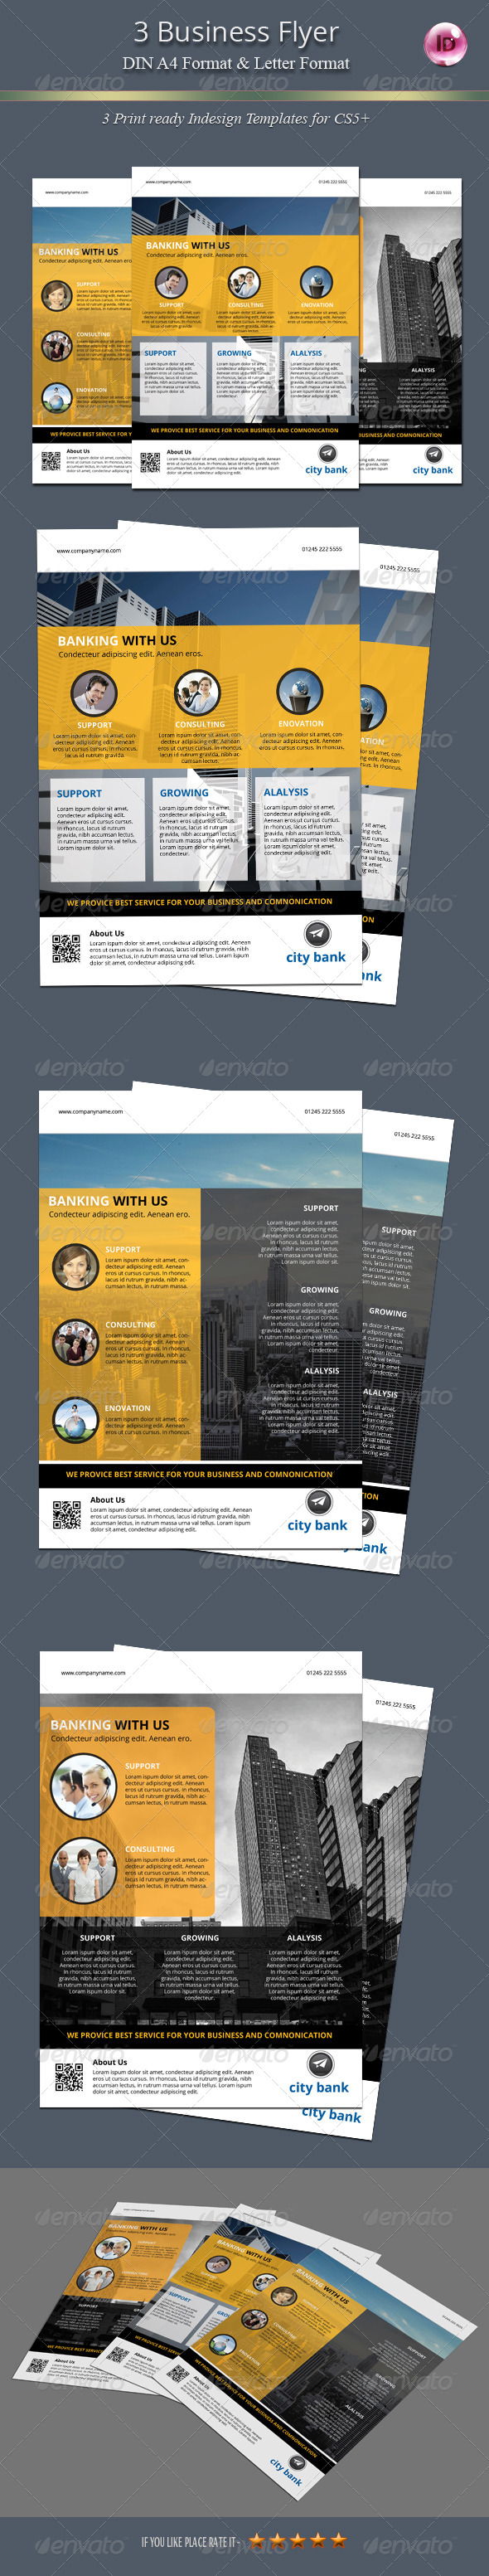 GraphicRiver 3 Business Flyer 7634004